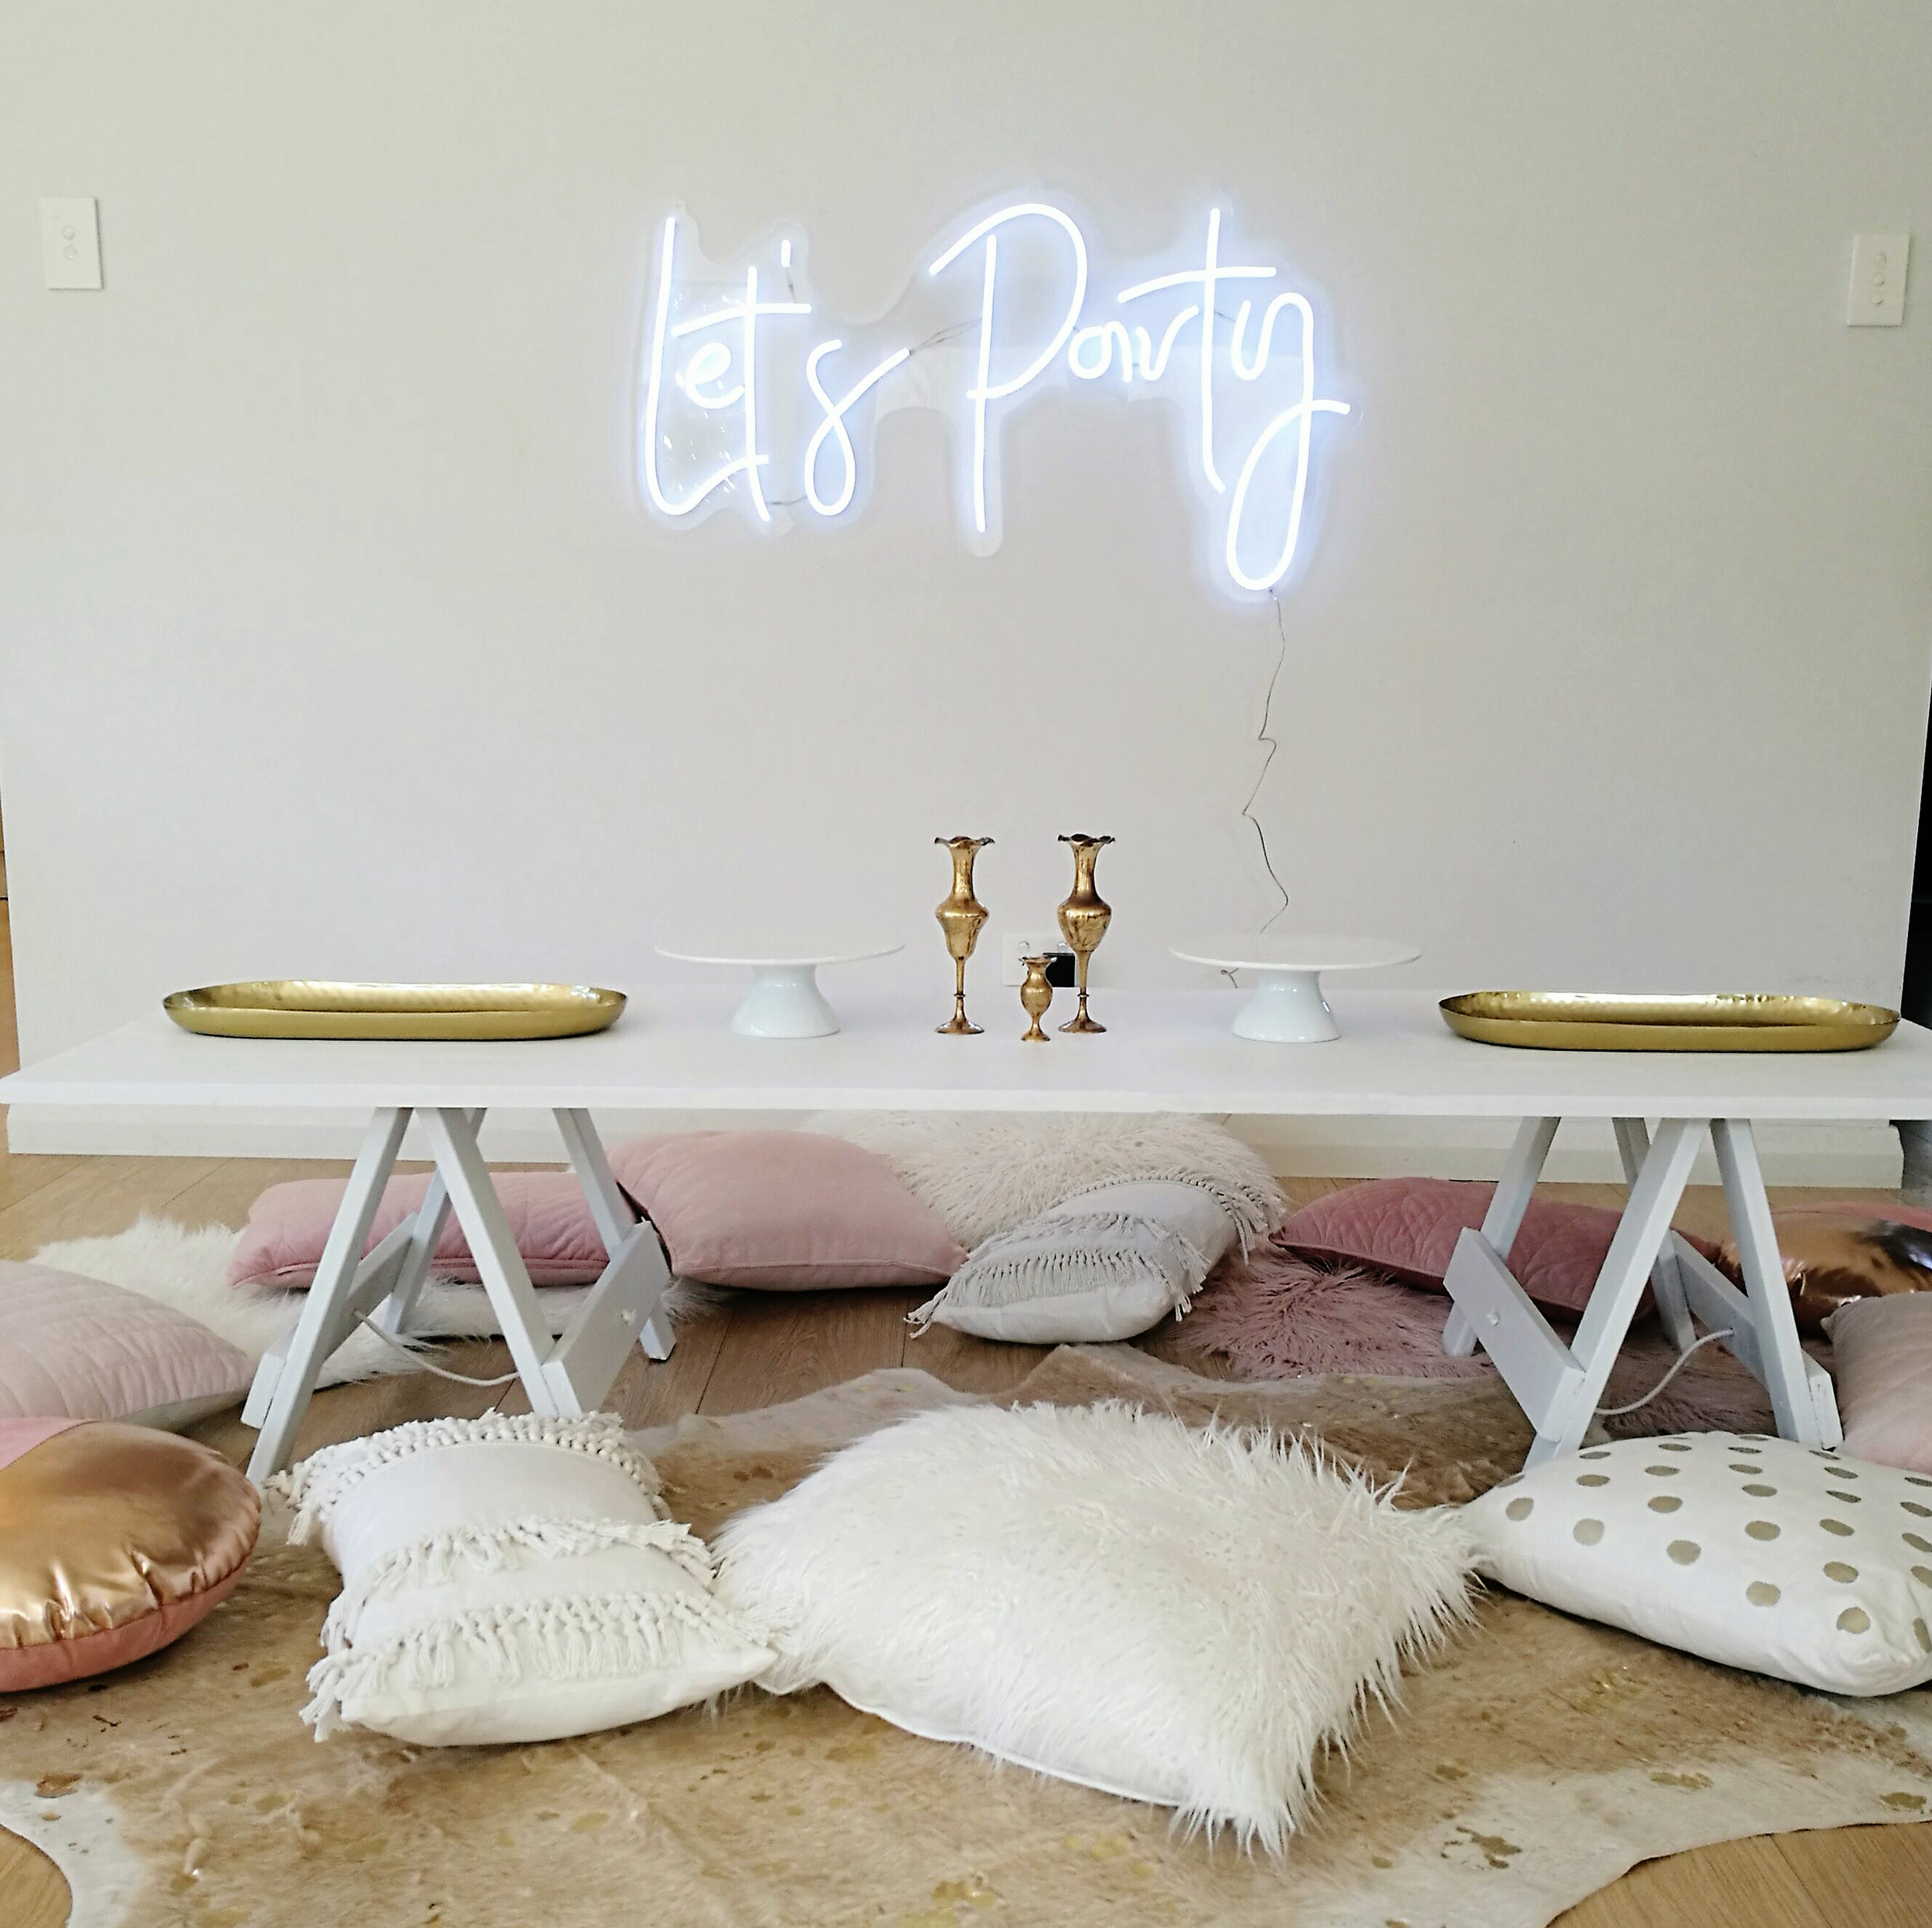 Luxe party hire package with neon sign.jpg